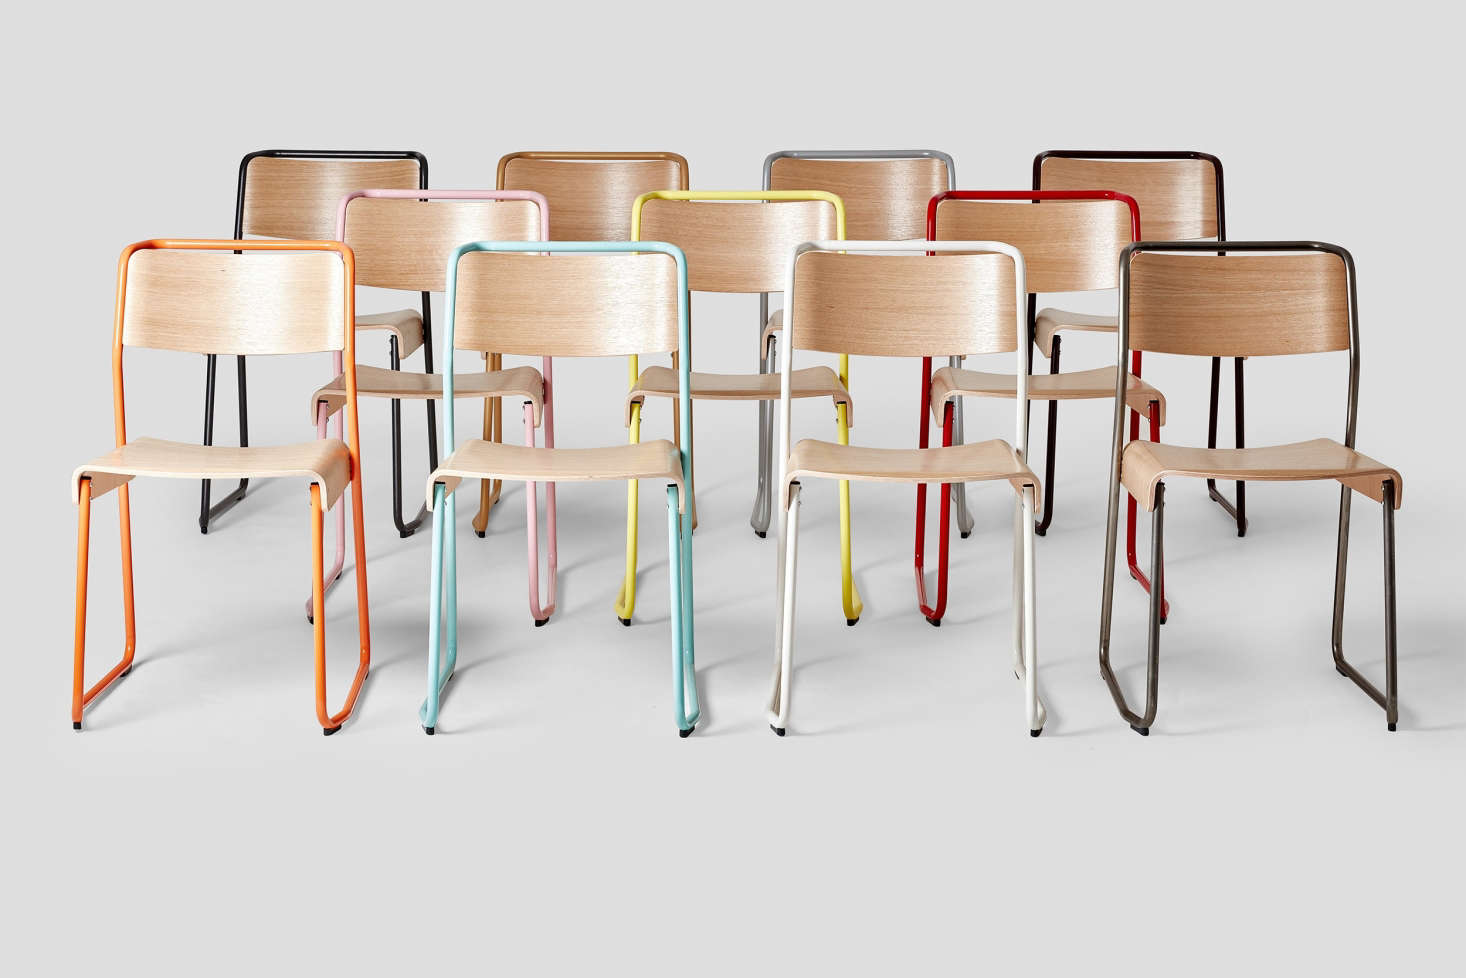 The Very Good U0026 Proper Canteen Utility Chair Comes In Four Wood Finishes  With 11 Color